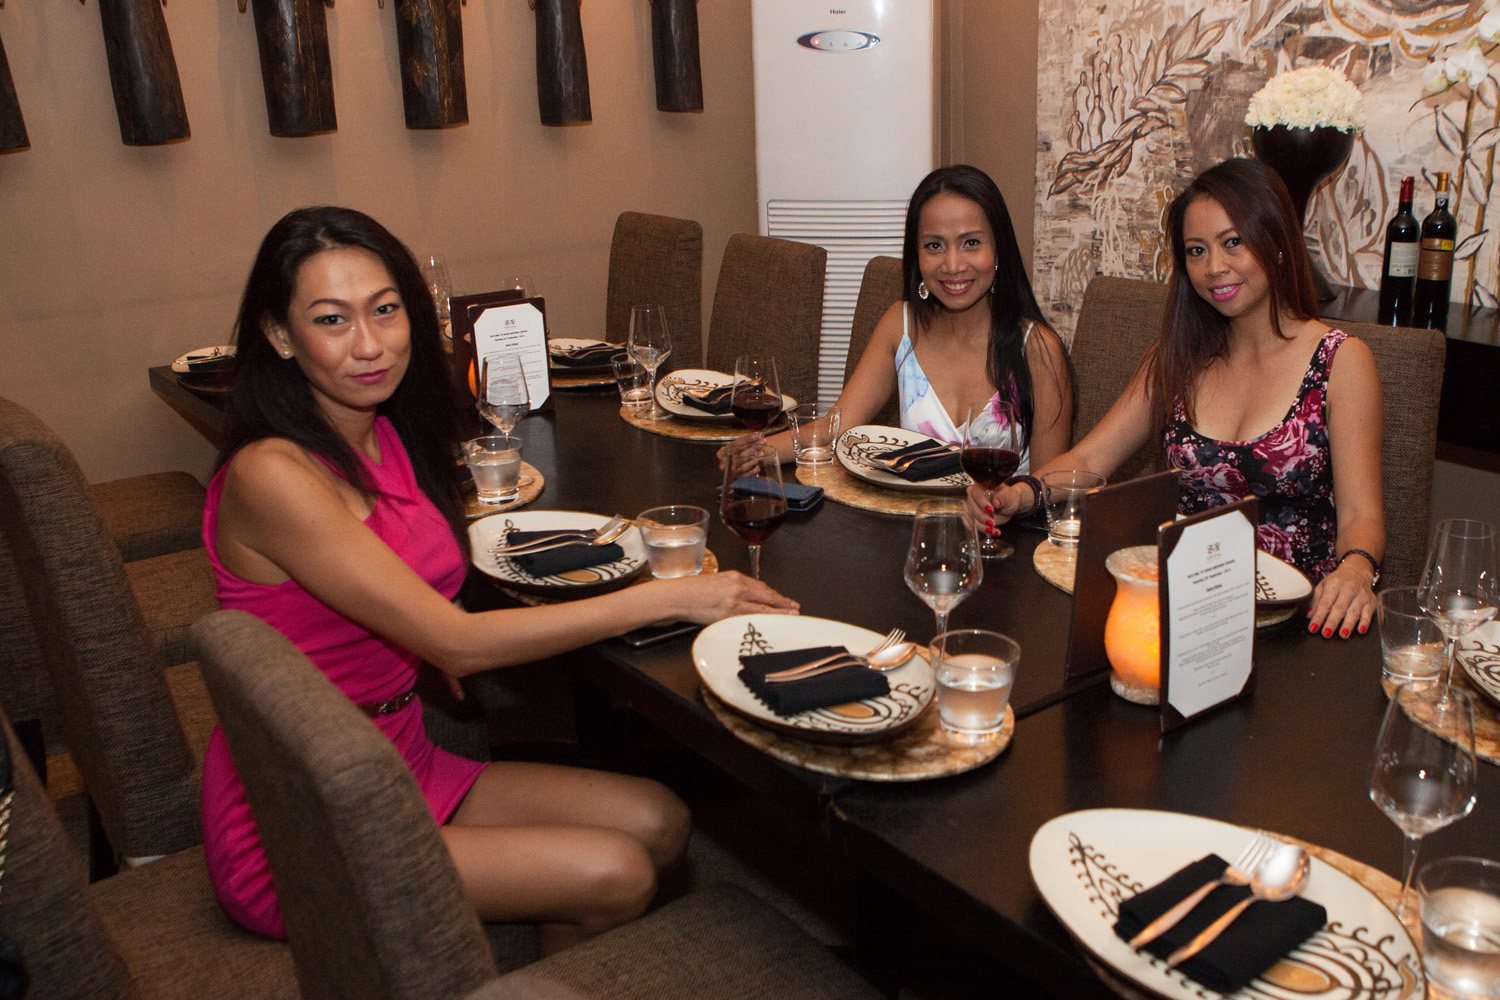 01_Birthday Dinner @Sarong 2015-09-26